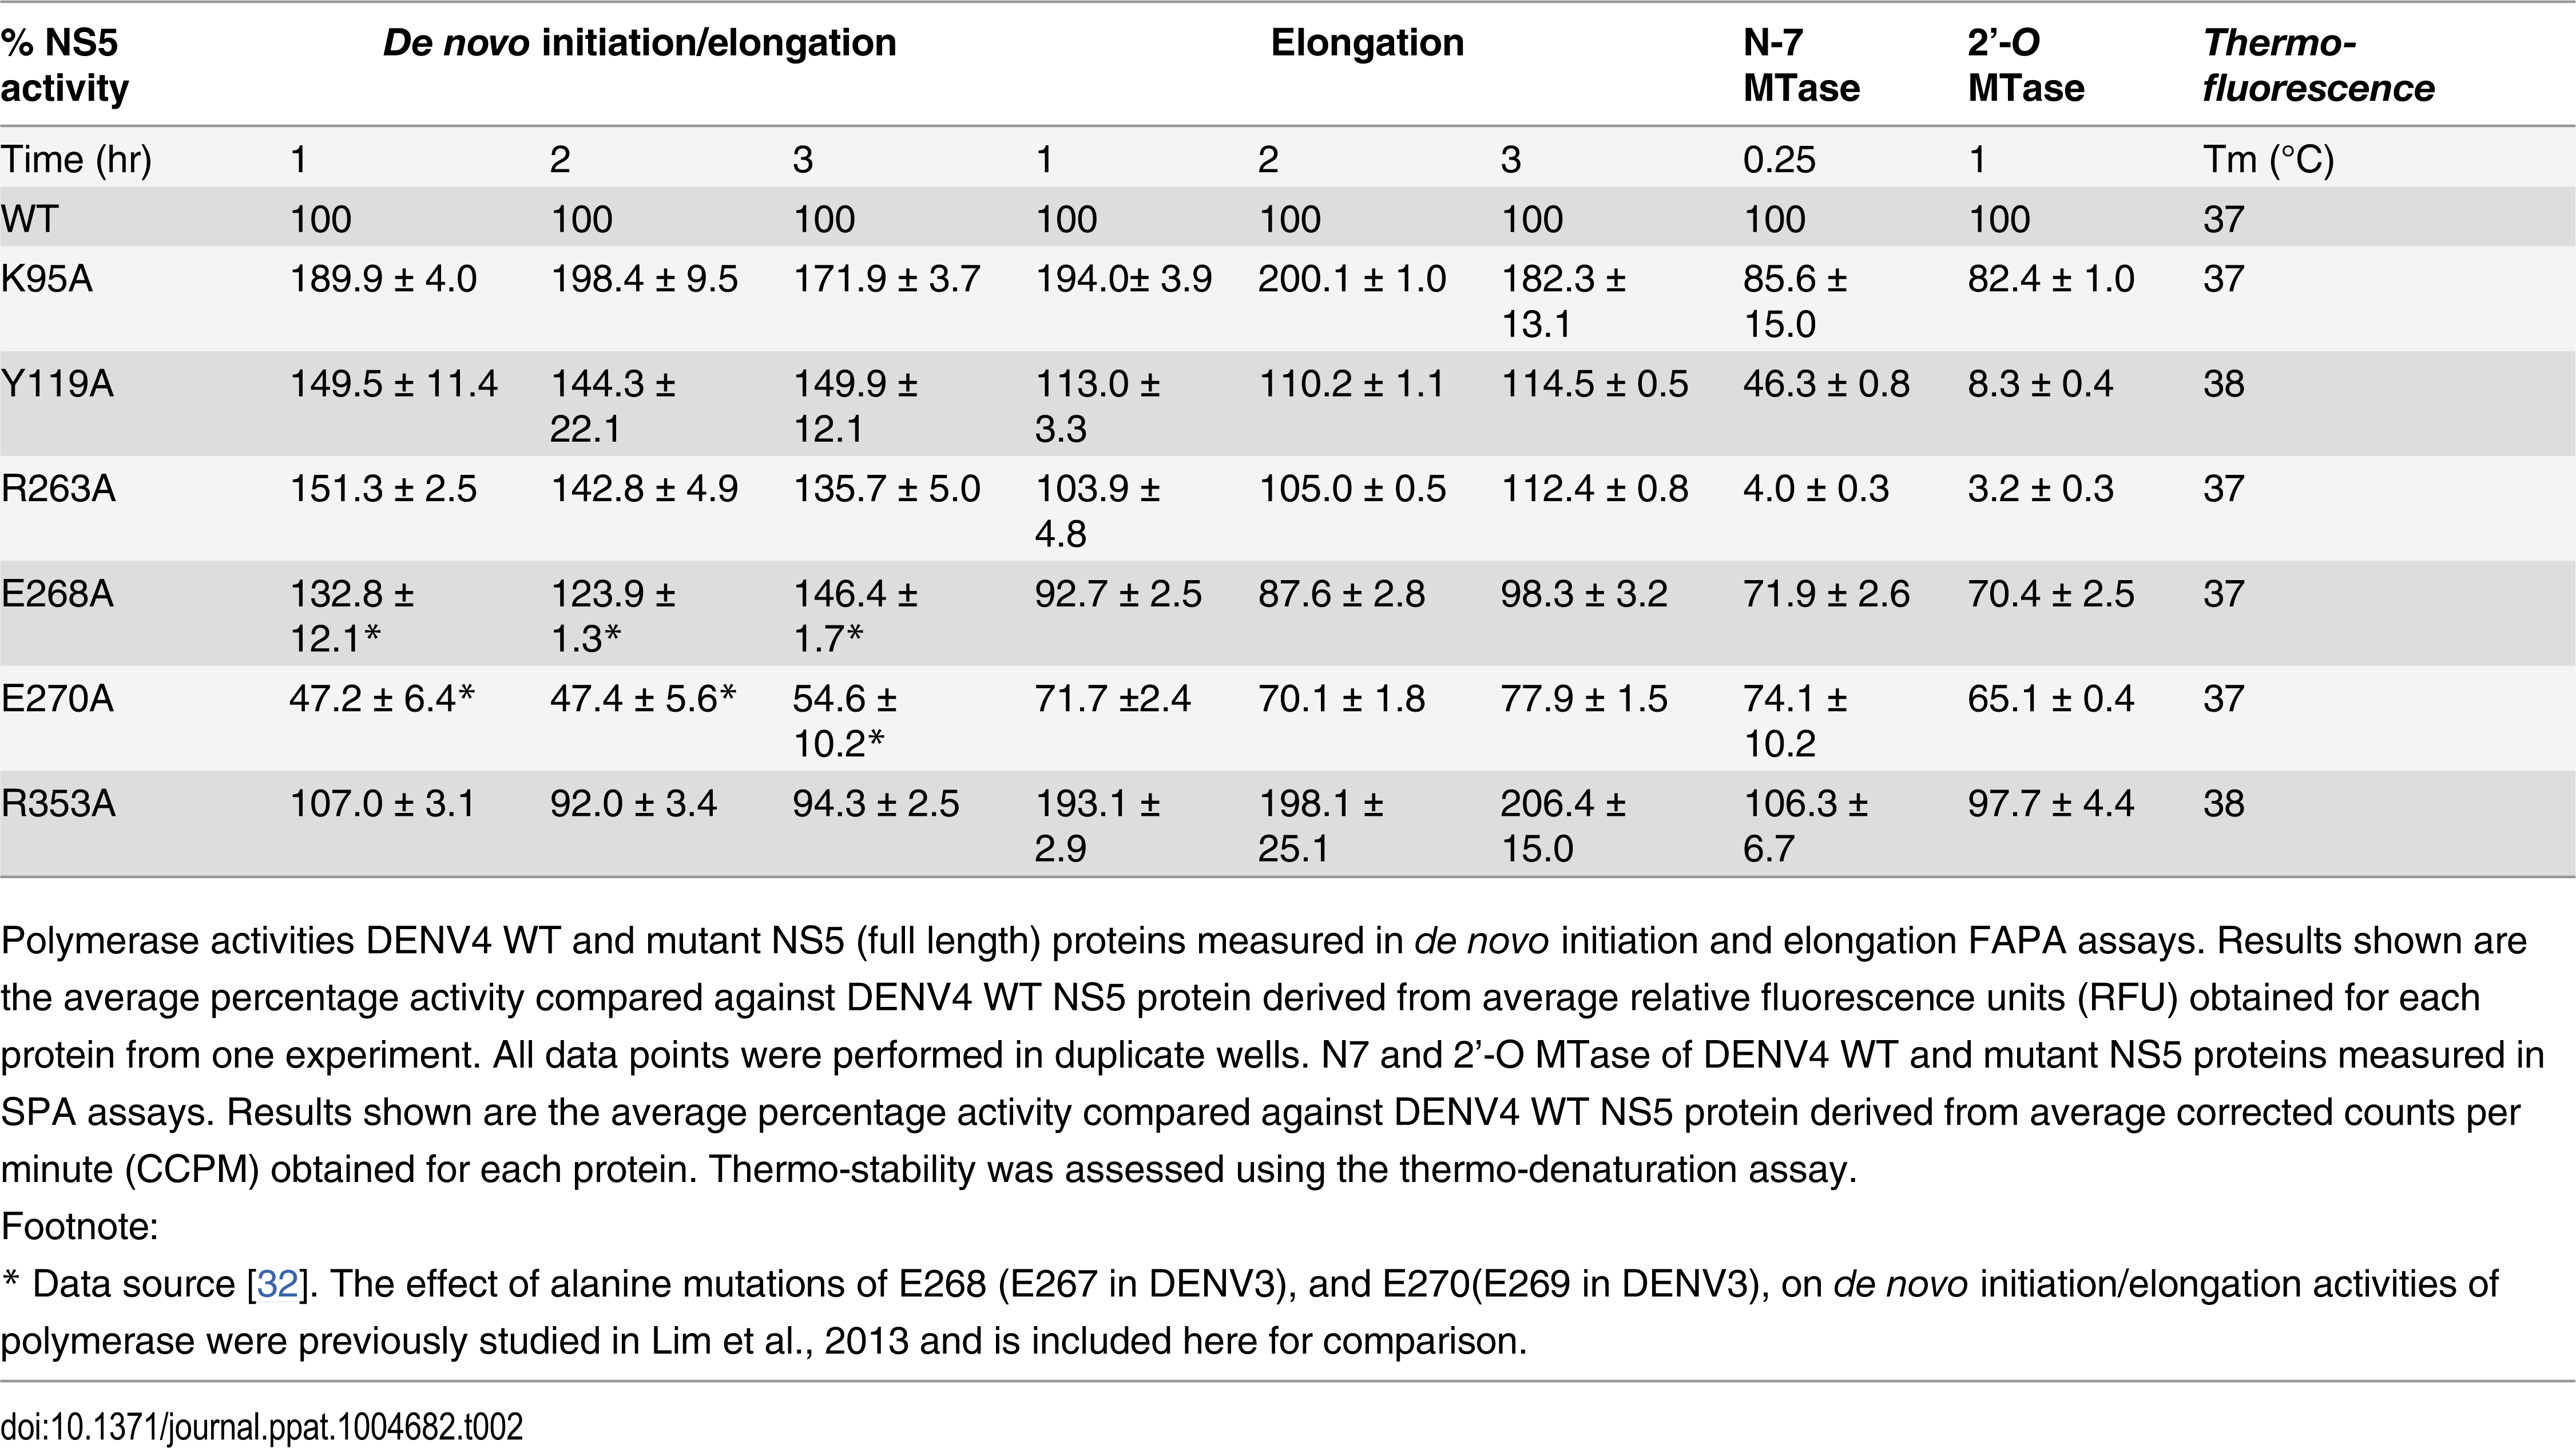 Enzymatic activities and thermo-stabilities of DENV4 WT and mutant NS5 proteins.